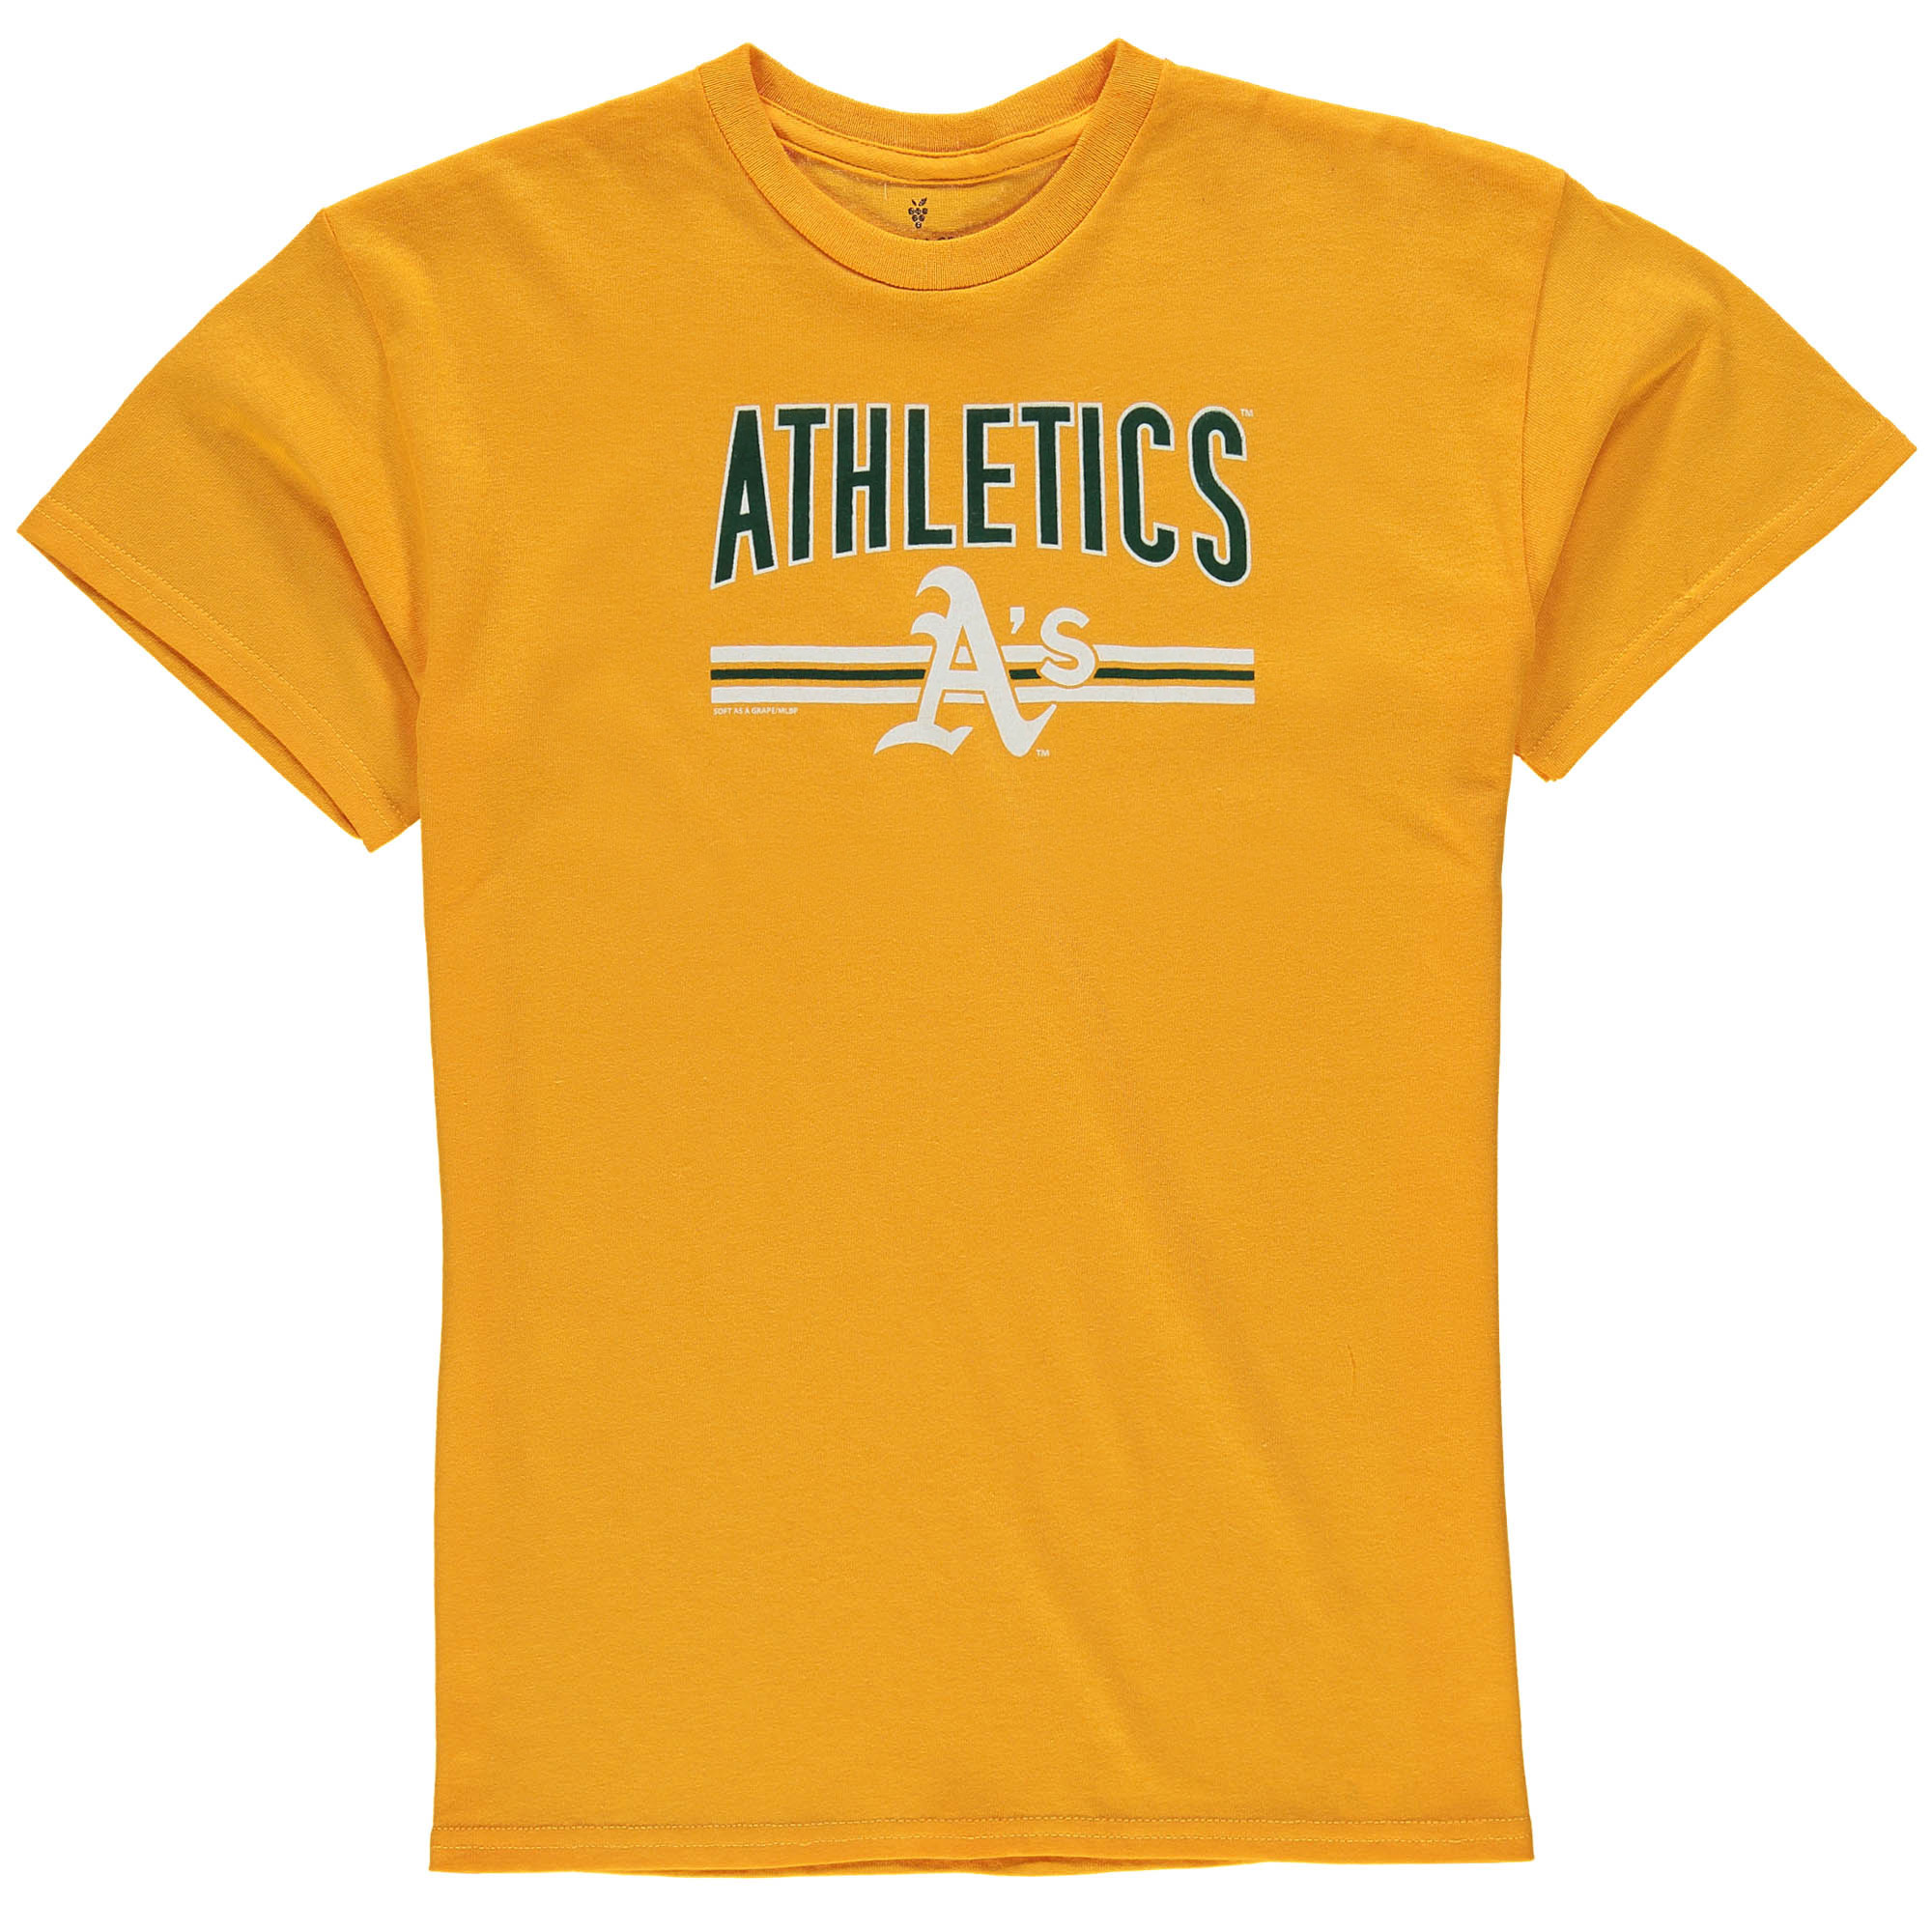 Youth Soft as a Grape Gold Oakland Athletics On Base Crew T-Shirt by SOFT AS A GRAPE